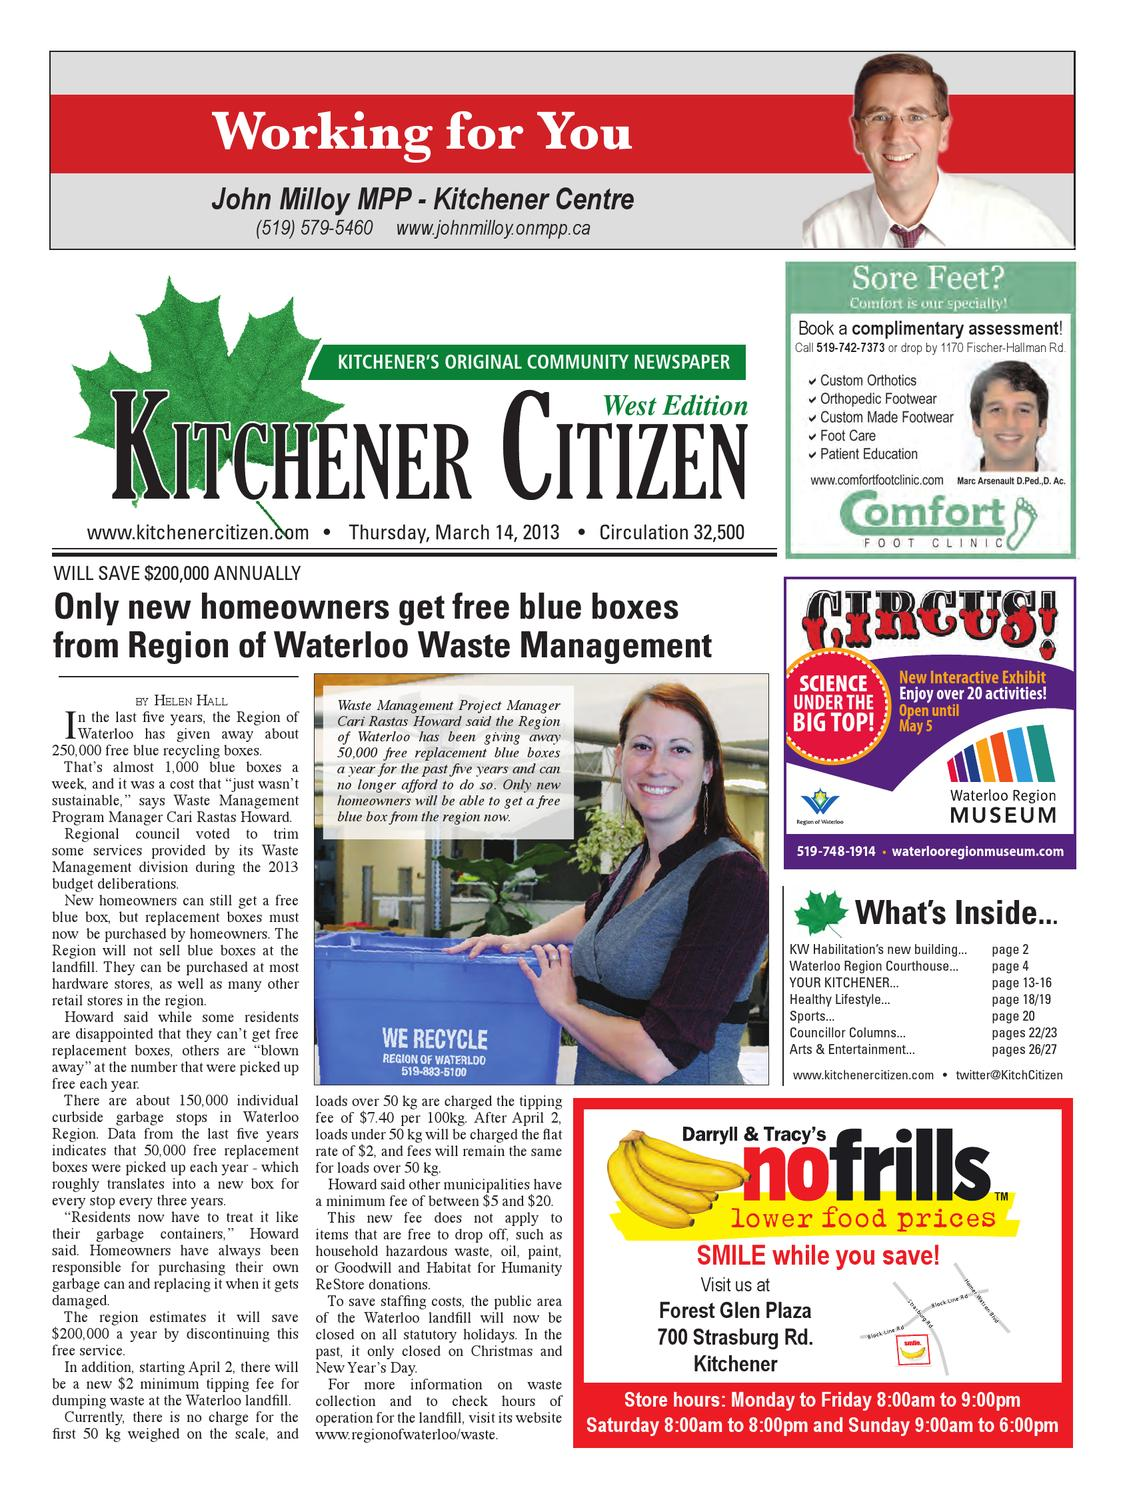 Kitchener Citizen - West Edition March 2013 by Kitchener Citizen - issuu